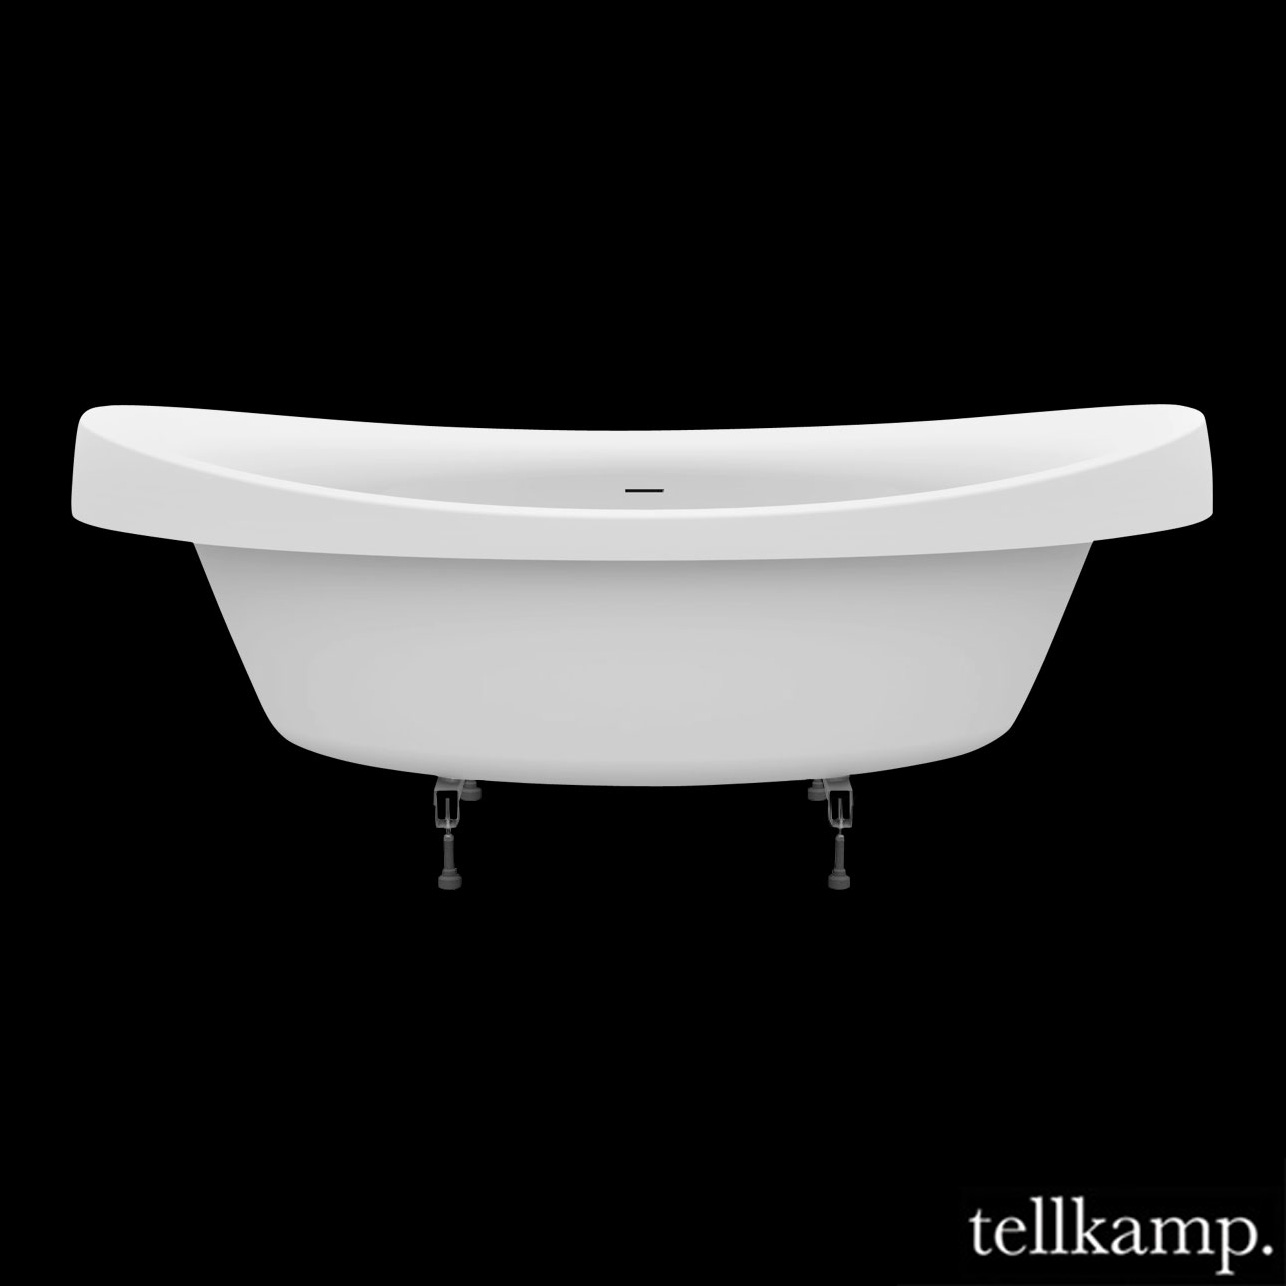 tellkamp spirit fix oval badewanne 0400 283 a cr. Black Bedroom Furniture Sets. Home Design Ideas